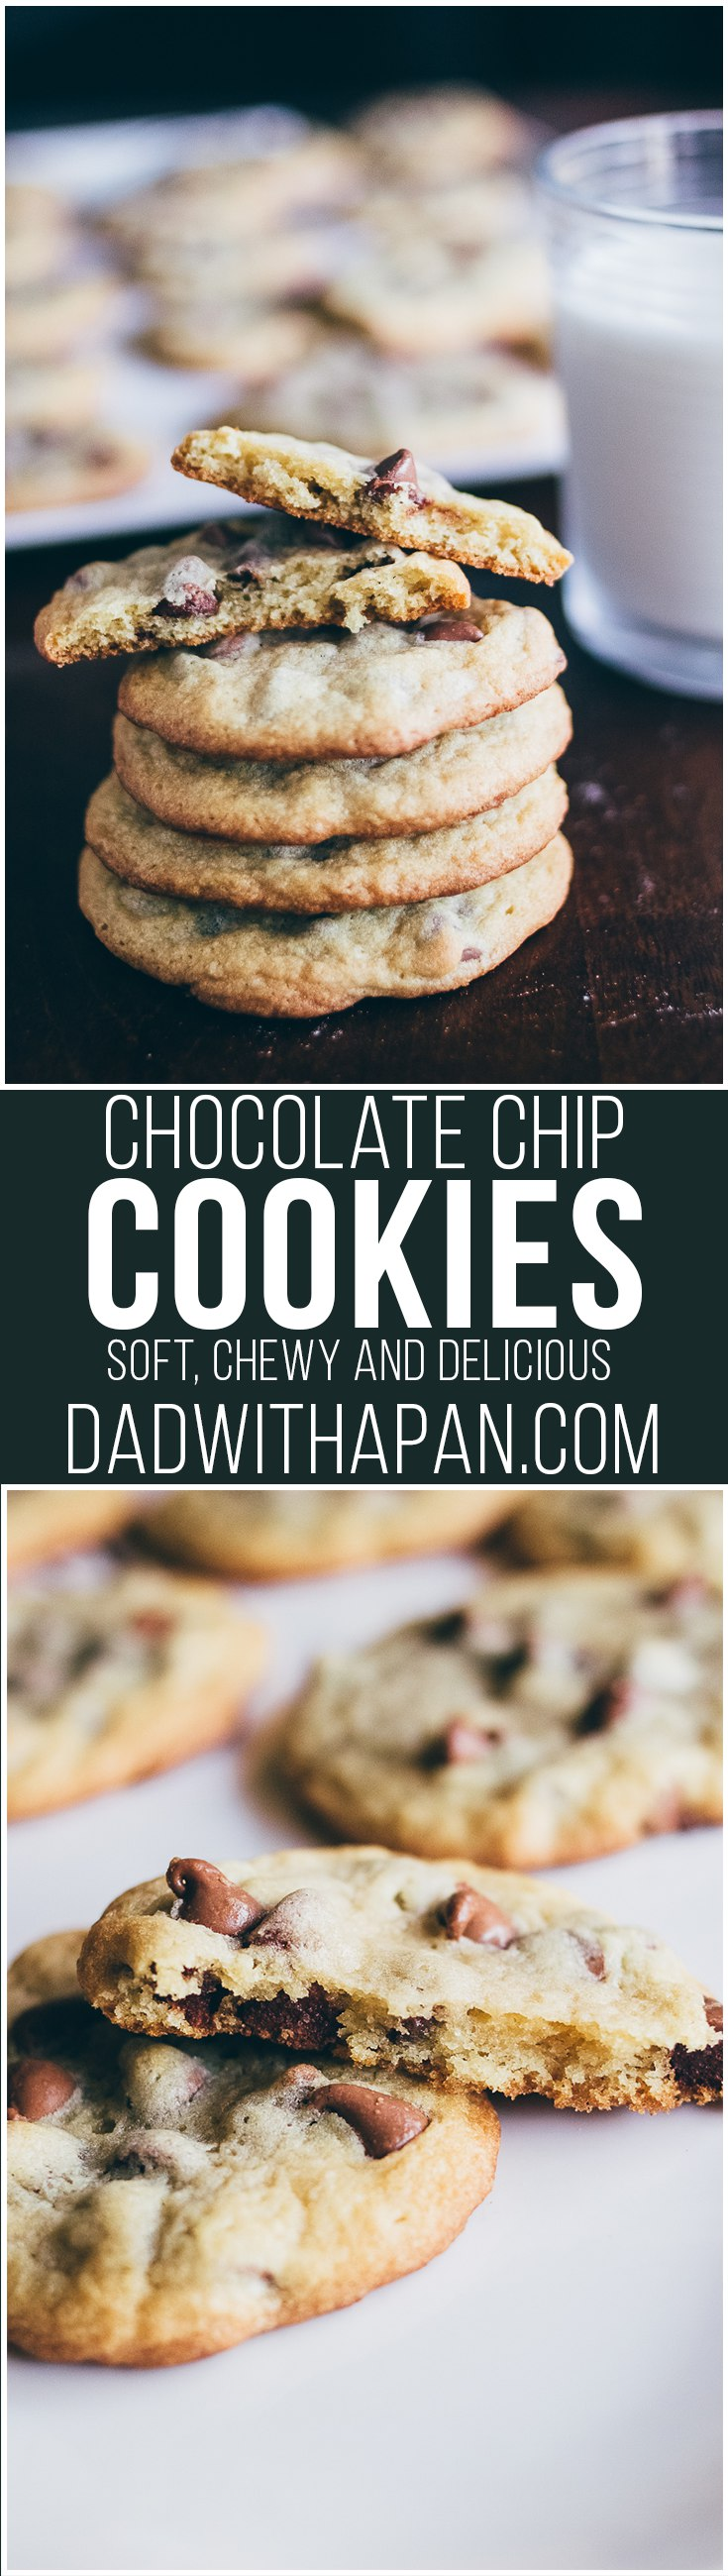 Chewy And Soft Chocolate Chip Cookies - Dad With A Pan